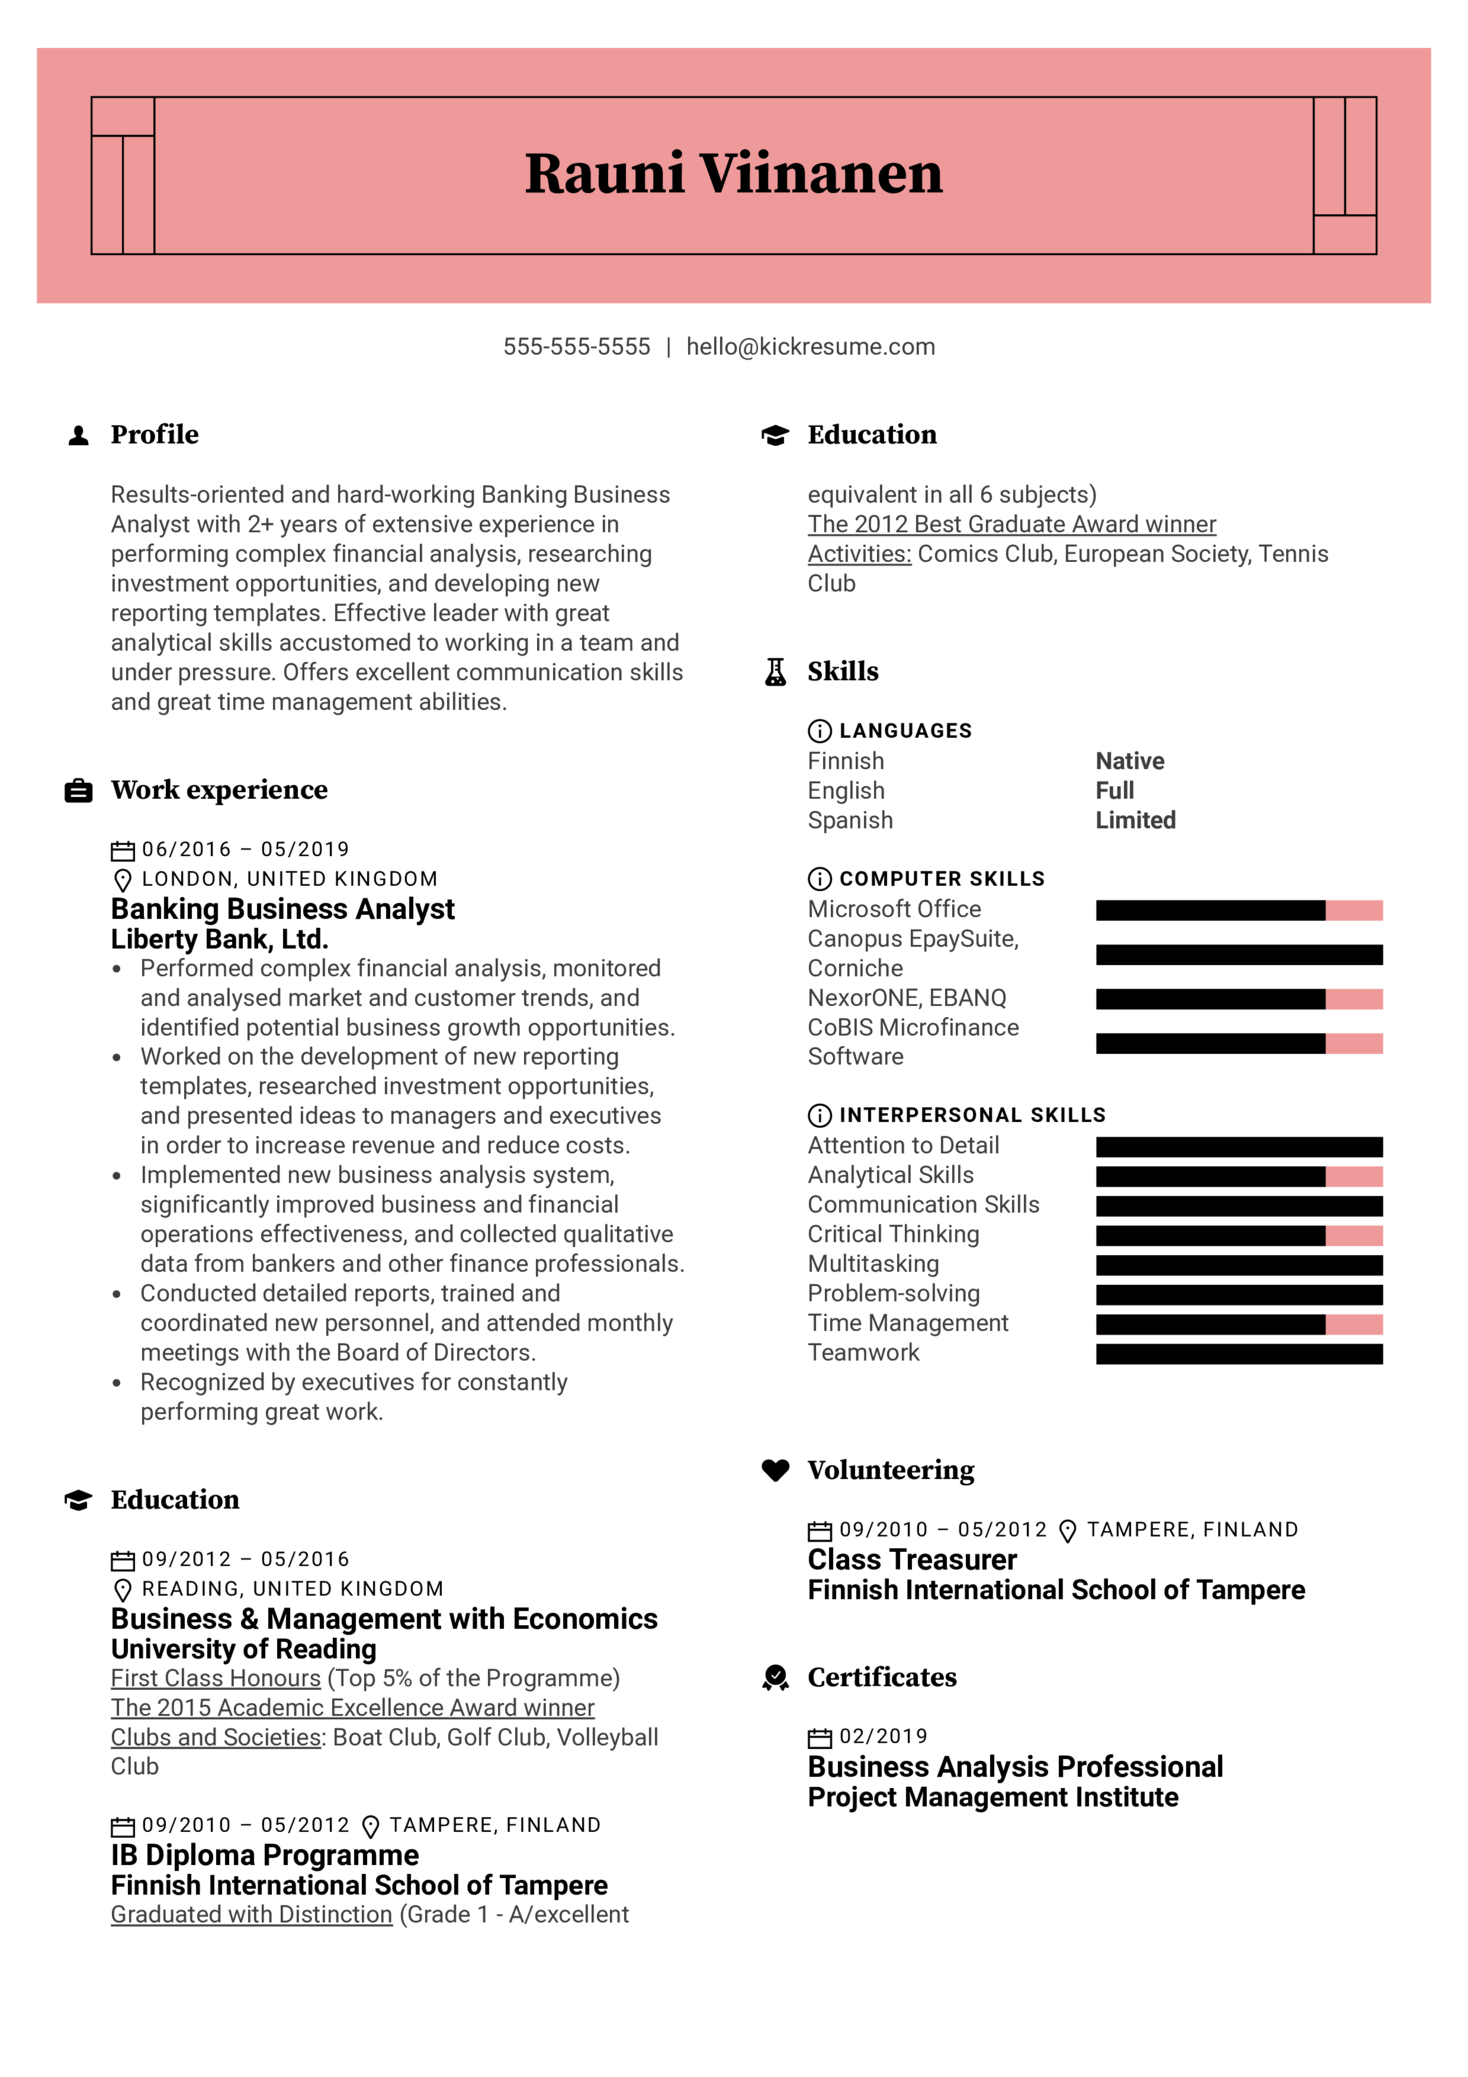 Banking Business Analyst Resume Sample (Part 1)